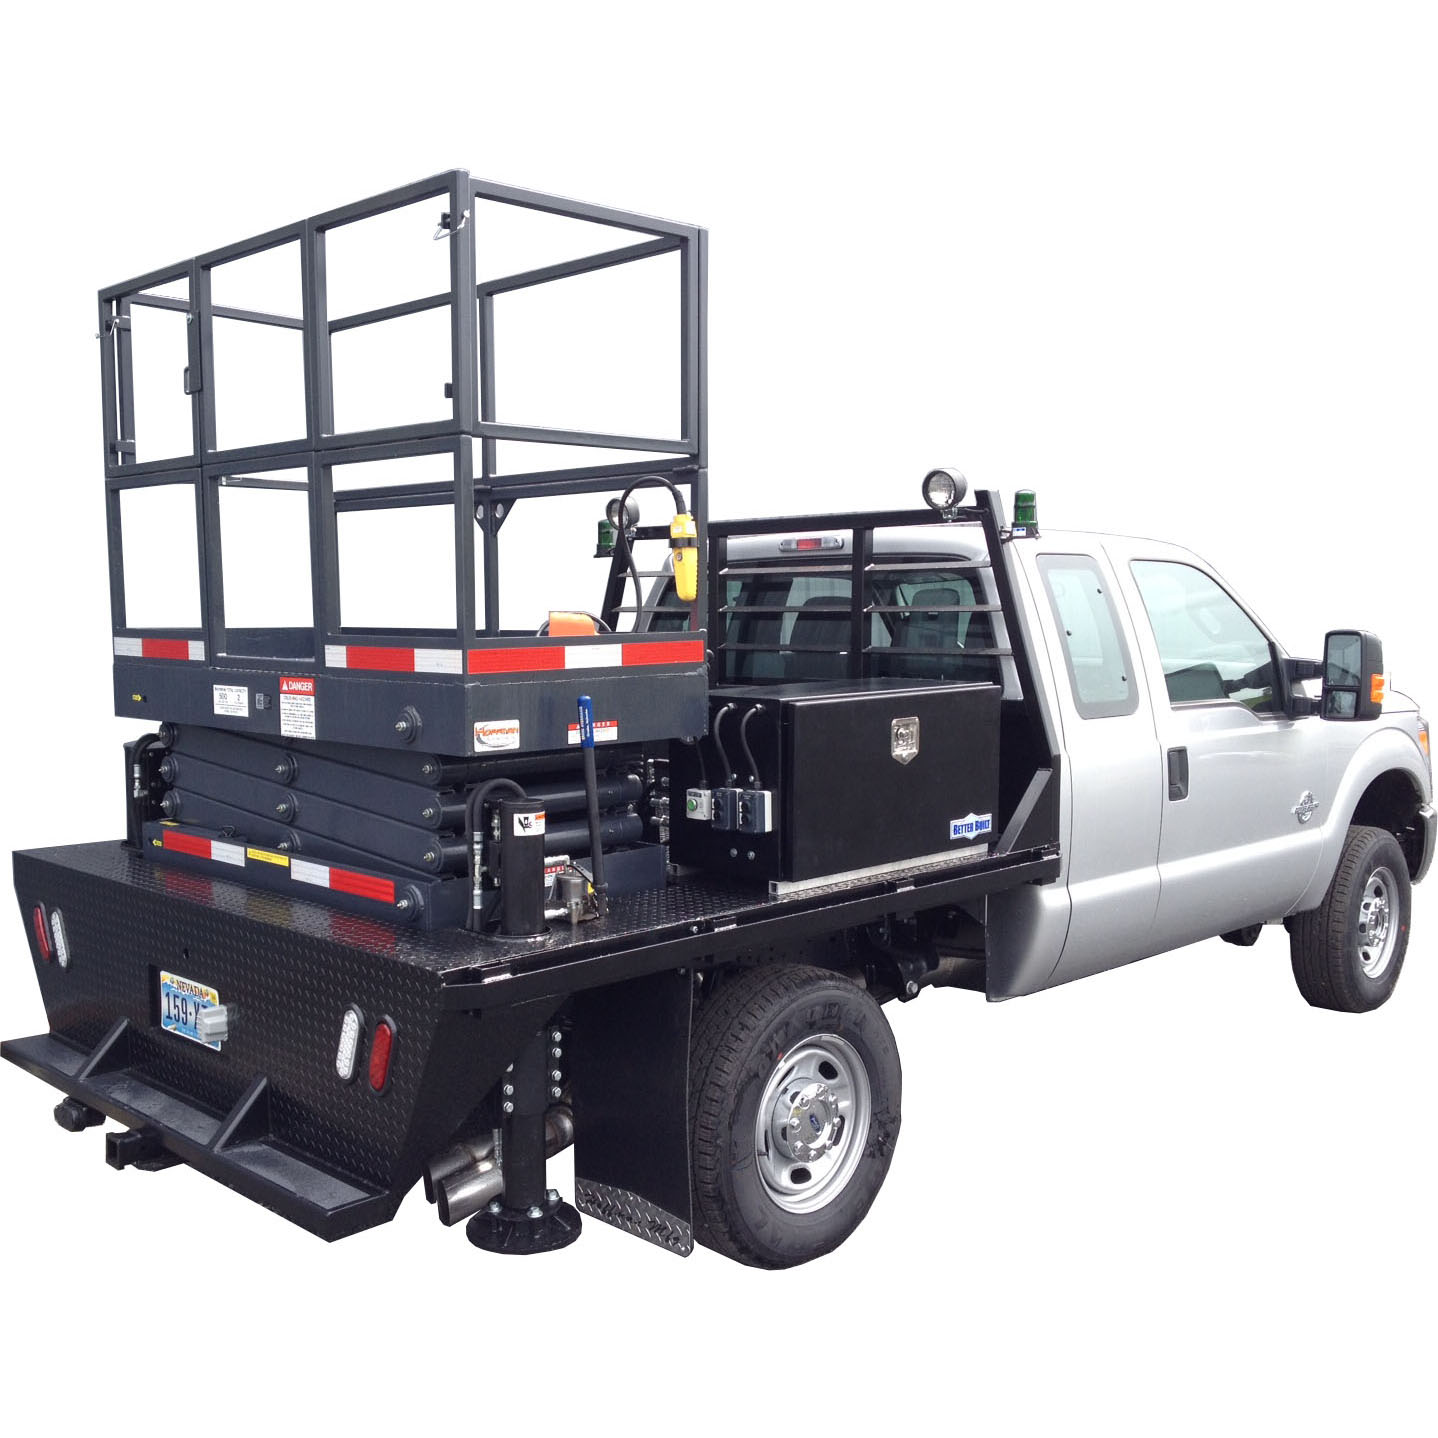 Boom Scissor Lifts Personnel Carrier Hoffman Manufacturing